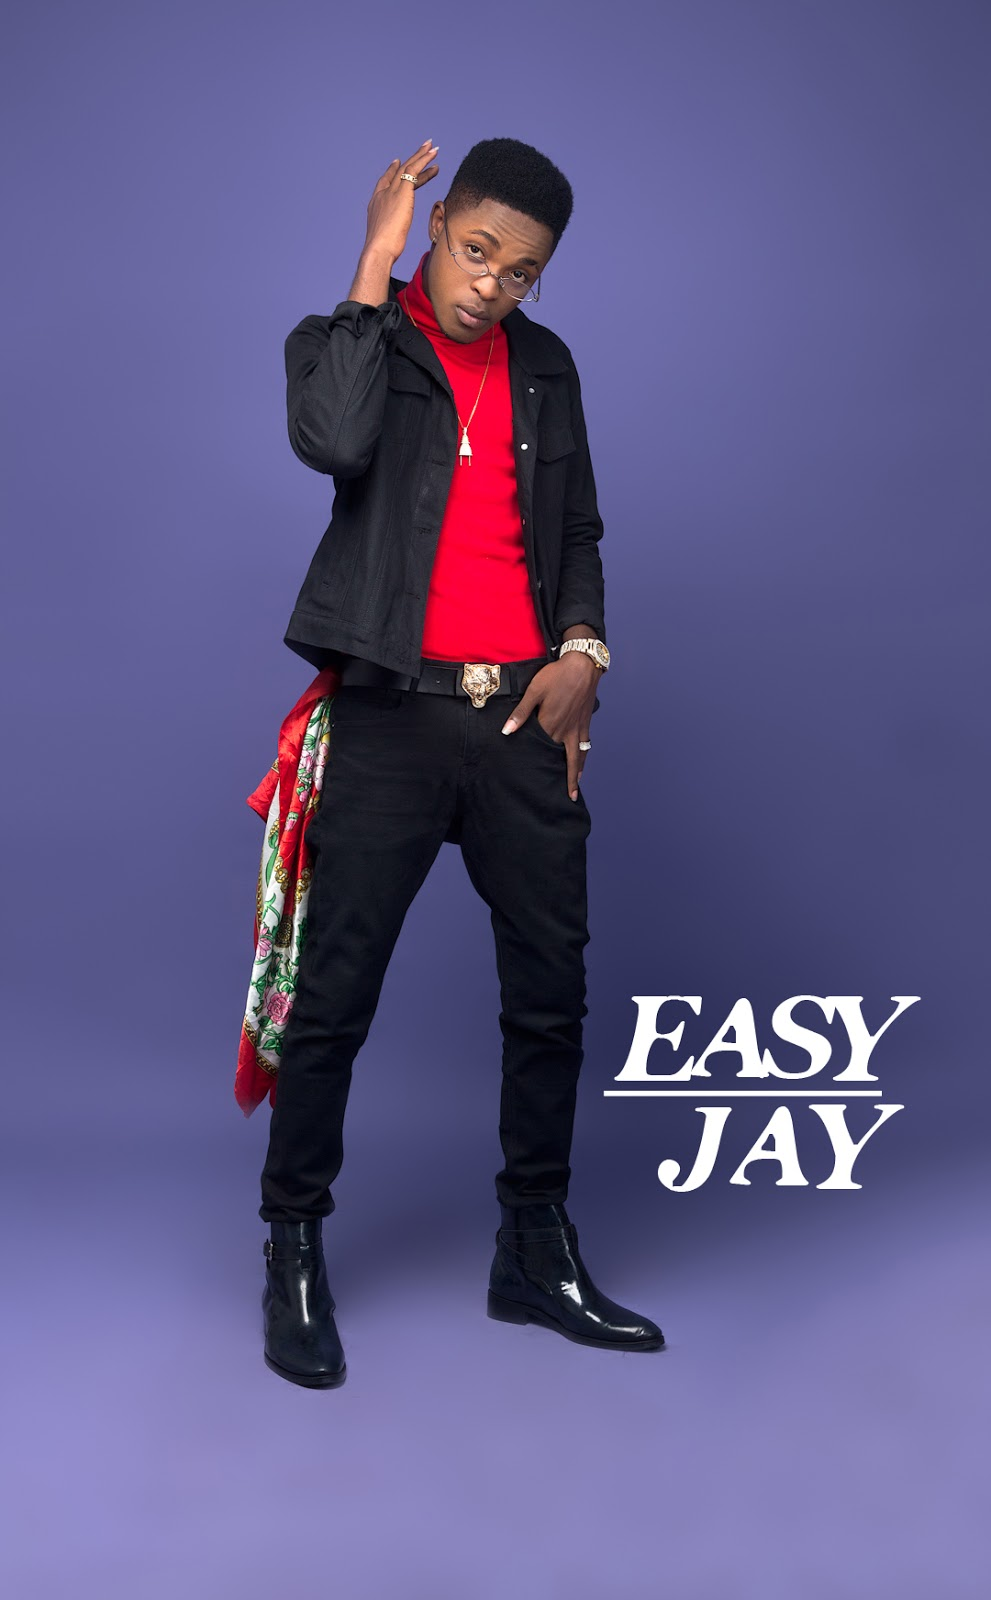 G-Worldwide signs two new artistes Ajura & Easy Jay